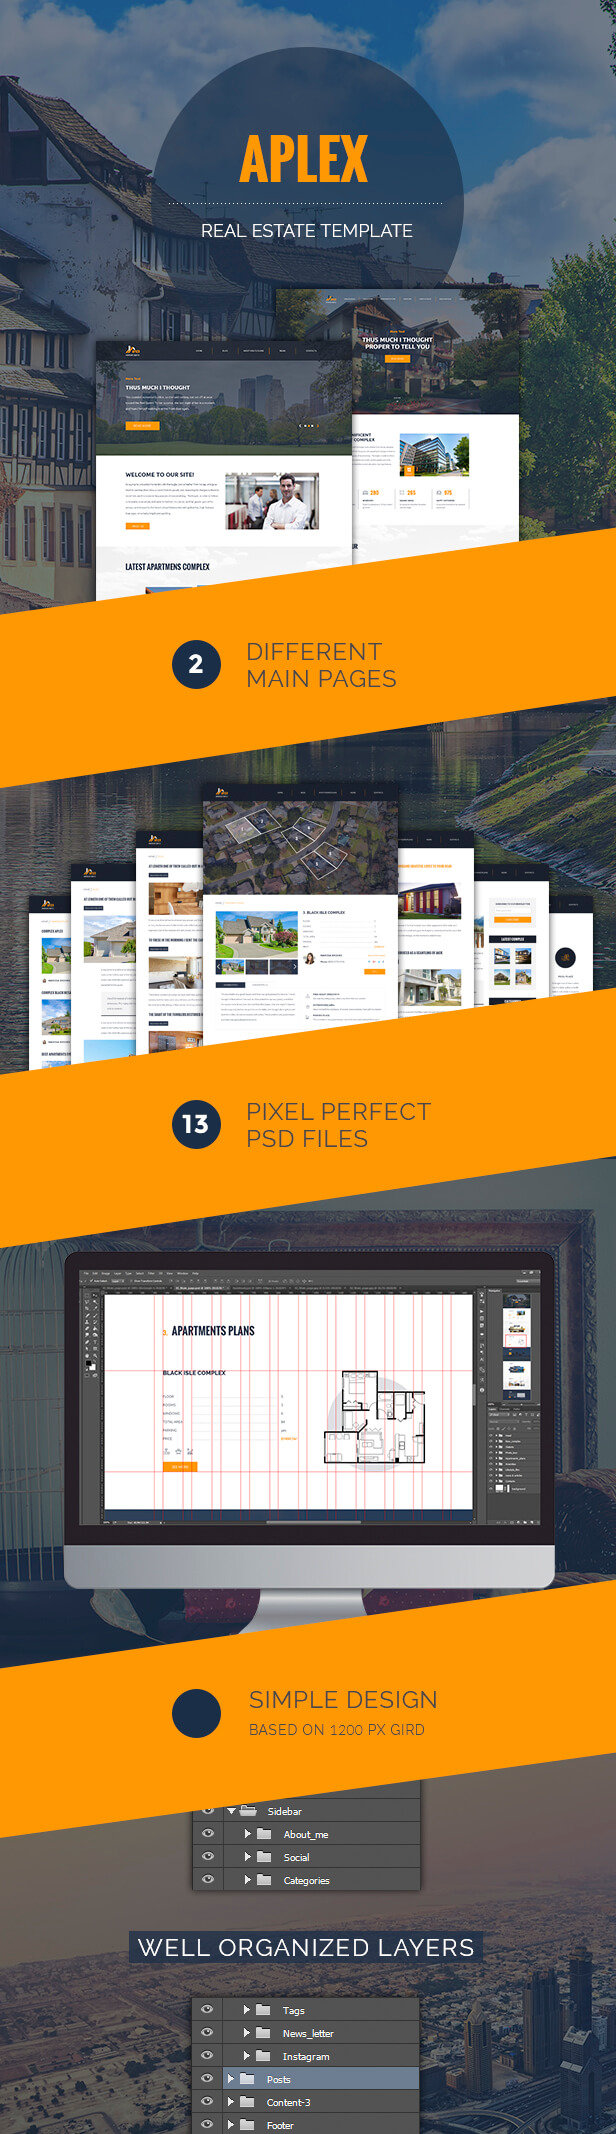 Awesome Pixel Perfect Real Esate PSD Template